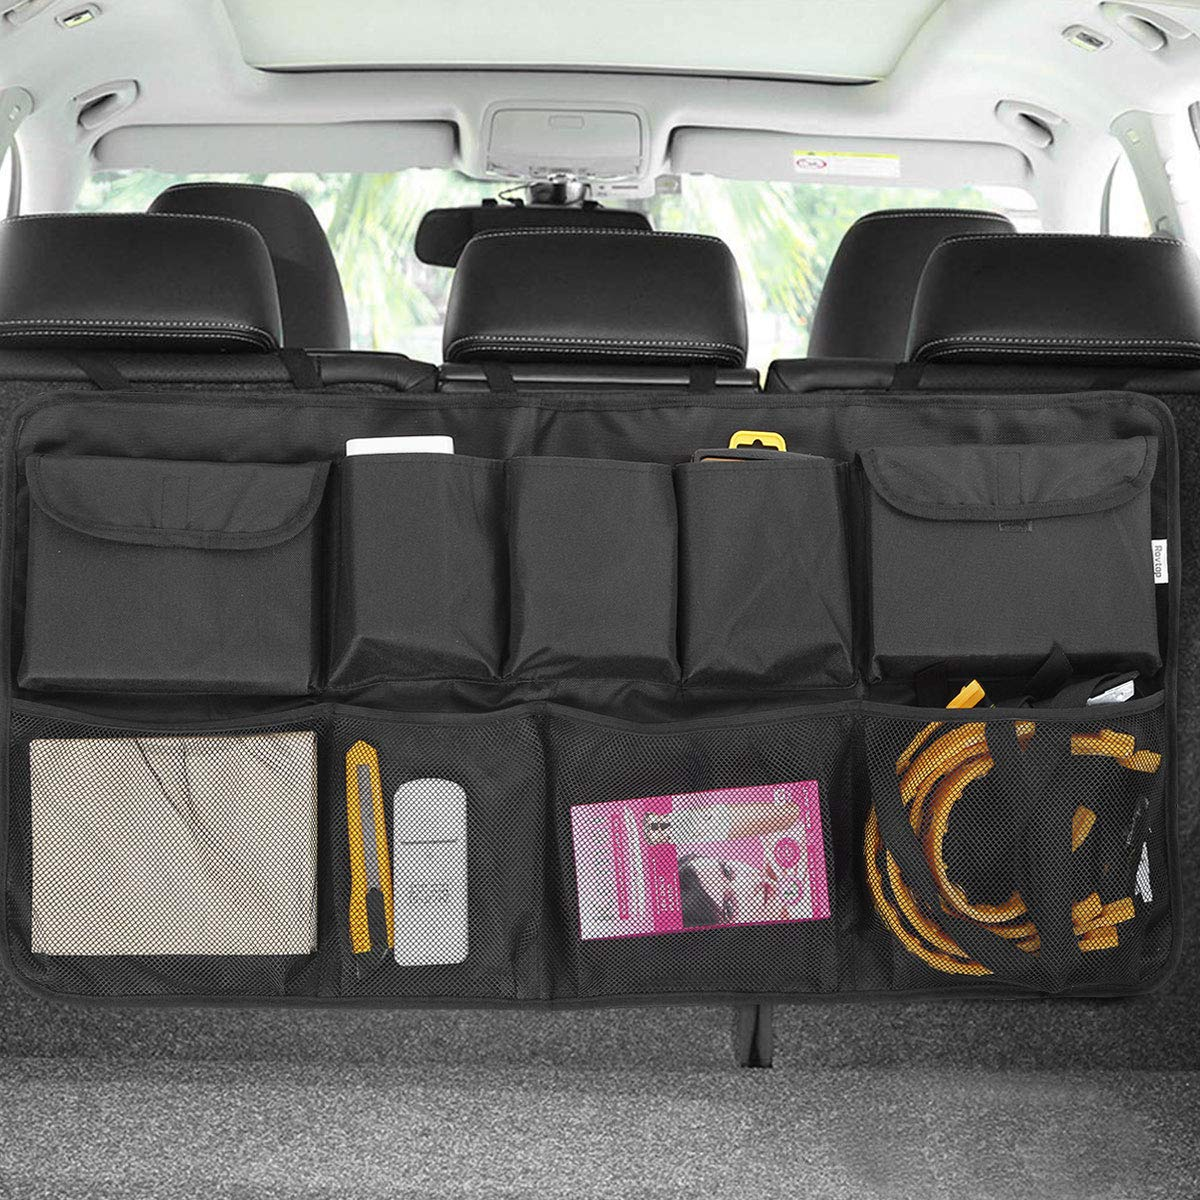 Car Backseat Trunk Organizer, Auto Hanging Back Seat Storage, Car Cargo Trunk Storage Organizer Bag for Truck, SUV, Van with Adjustable Straps by LAurth